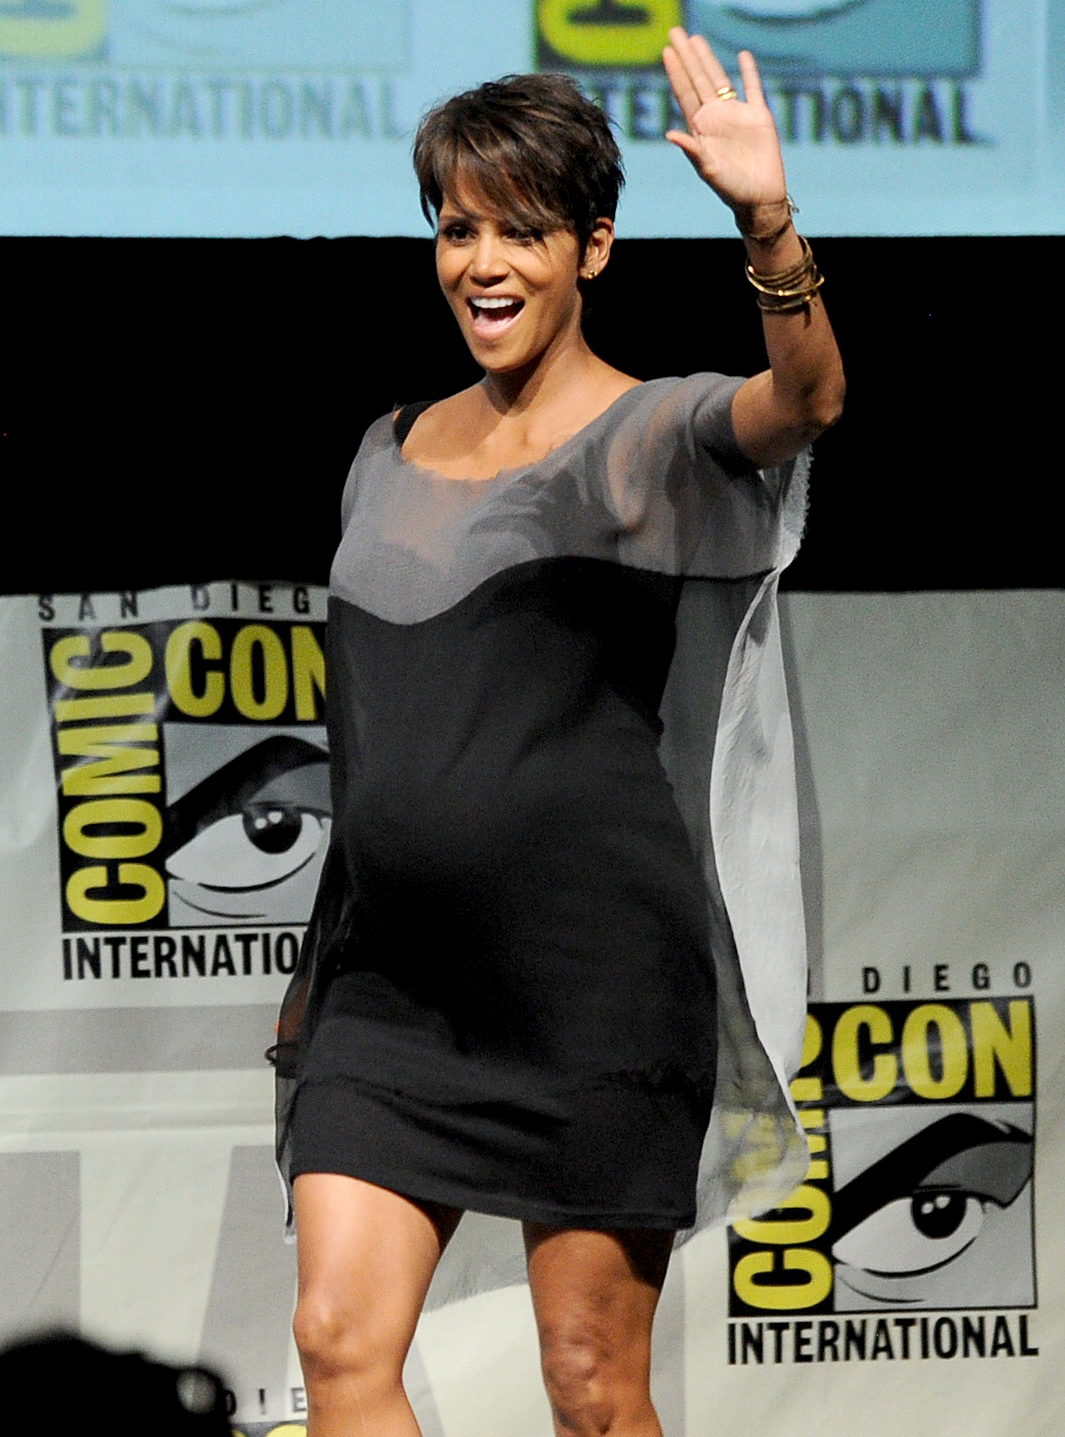 Halle-Berry-pregnant - Berry became a first-time mom at age 41 when she and then-boyfriend Gabriel Aubry said hello to daughter Nahla in March 2008. She confirmed her second pregnancy — at age 46 — in April 2013.